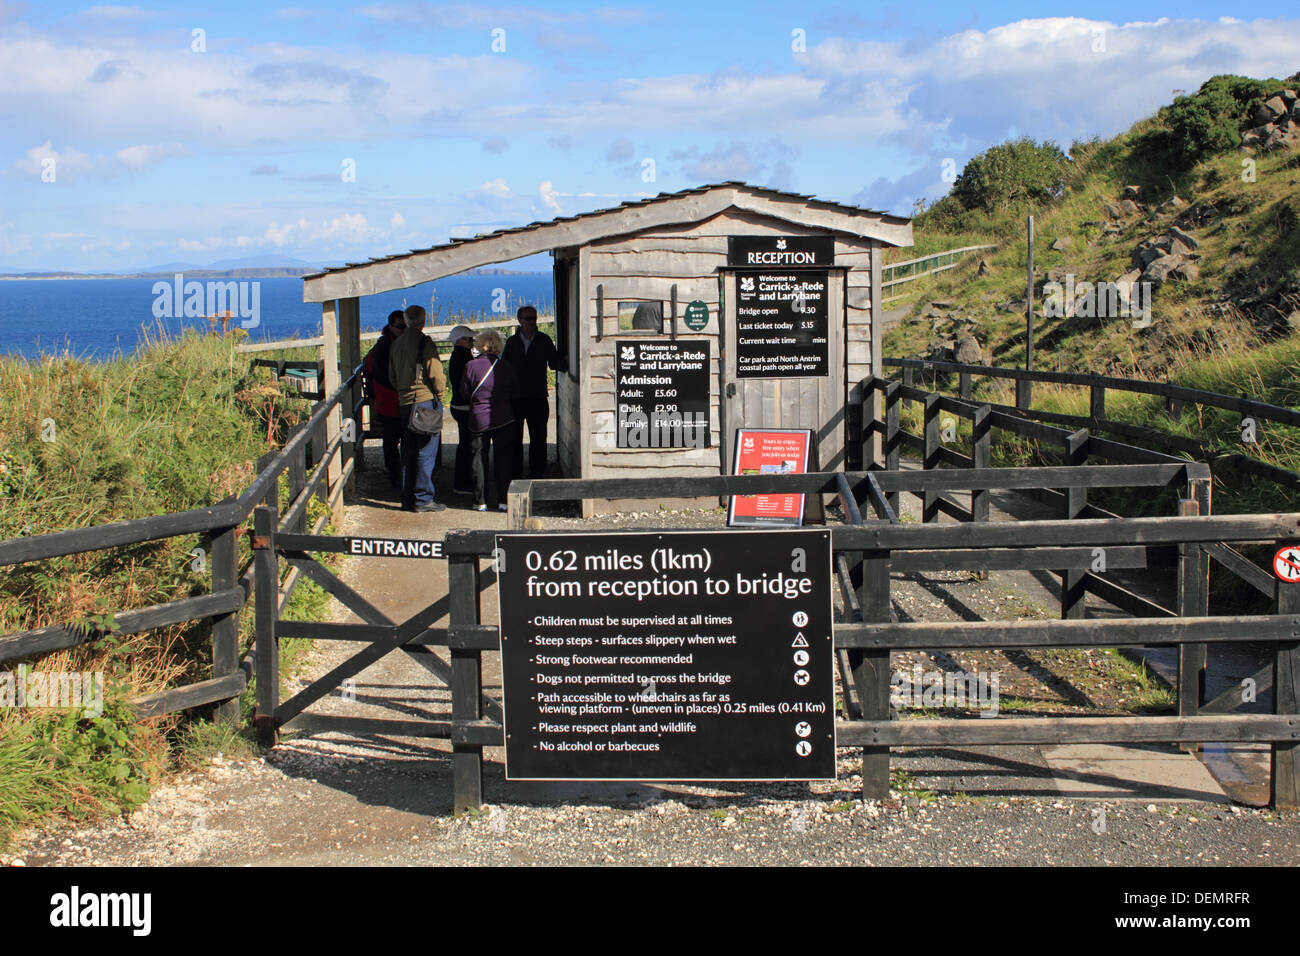 Entrance to Carrick-a-Rede, rope bridge on the Causeway Coastal Route, Northern Ireland. - Stock Image